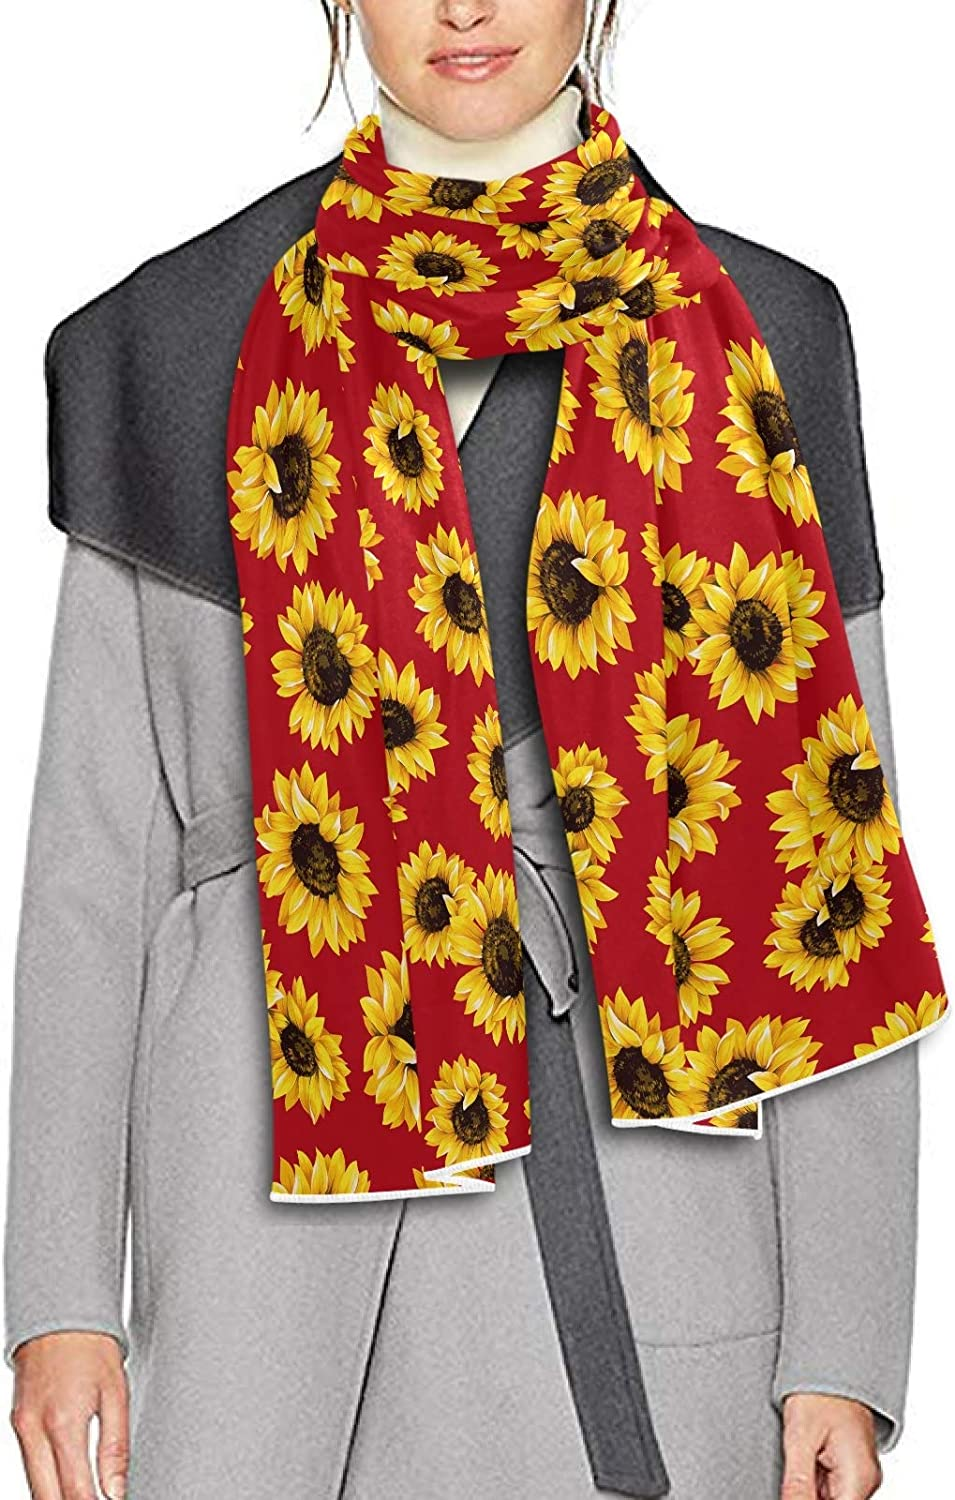 Scarf for Women and Men Vibrant Sunflower Red Background Blanket Shawl Scarves Wraps Soft Thick Winter Large Scarves Lightweight